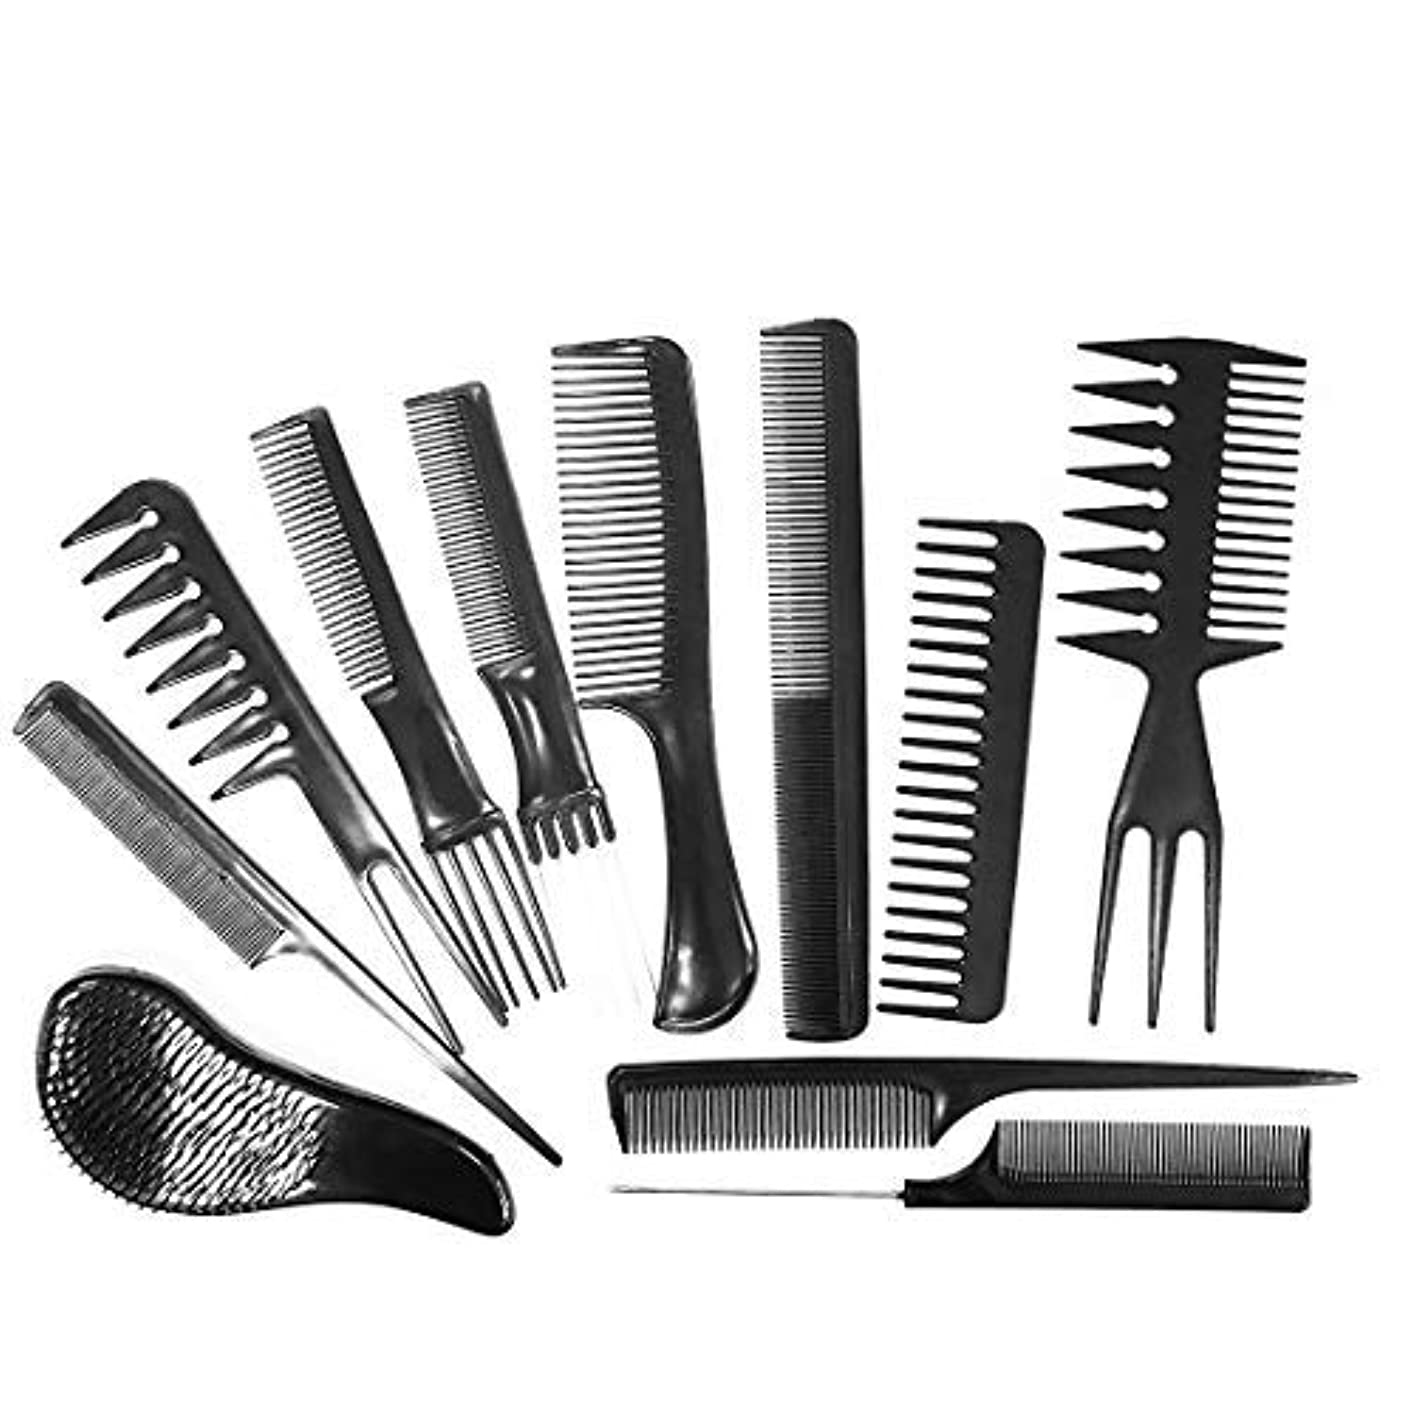 住所事実見るDaimay Professional Hair Styling Comb Set Hair Styling Clips Salon Hair Styling Barbers Comb Set Variety Pack...